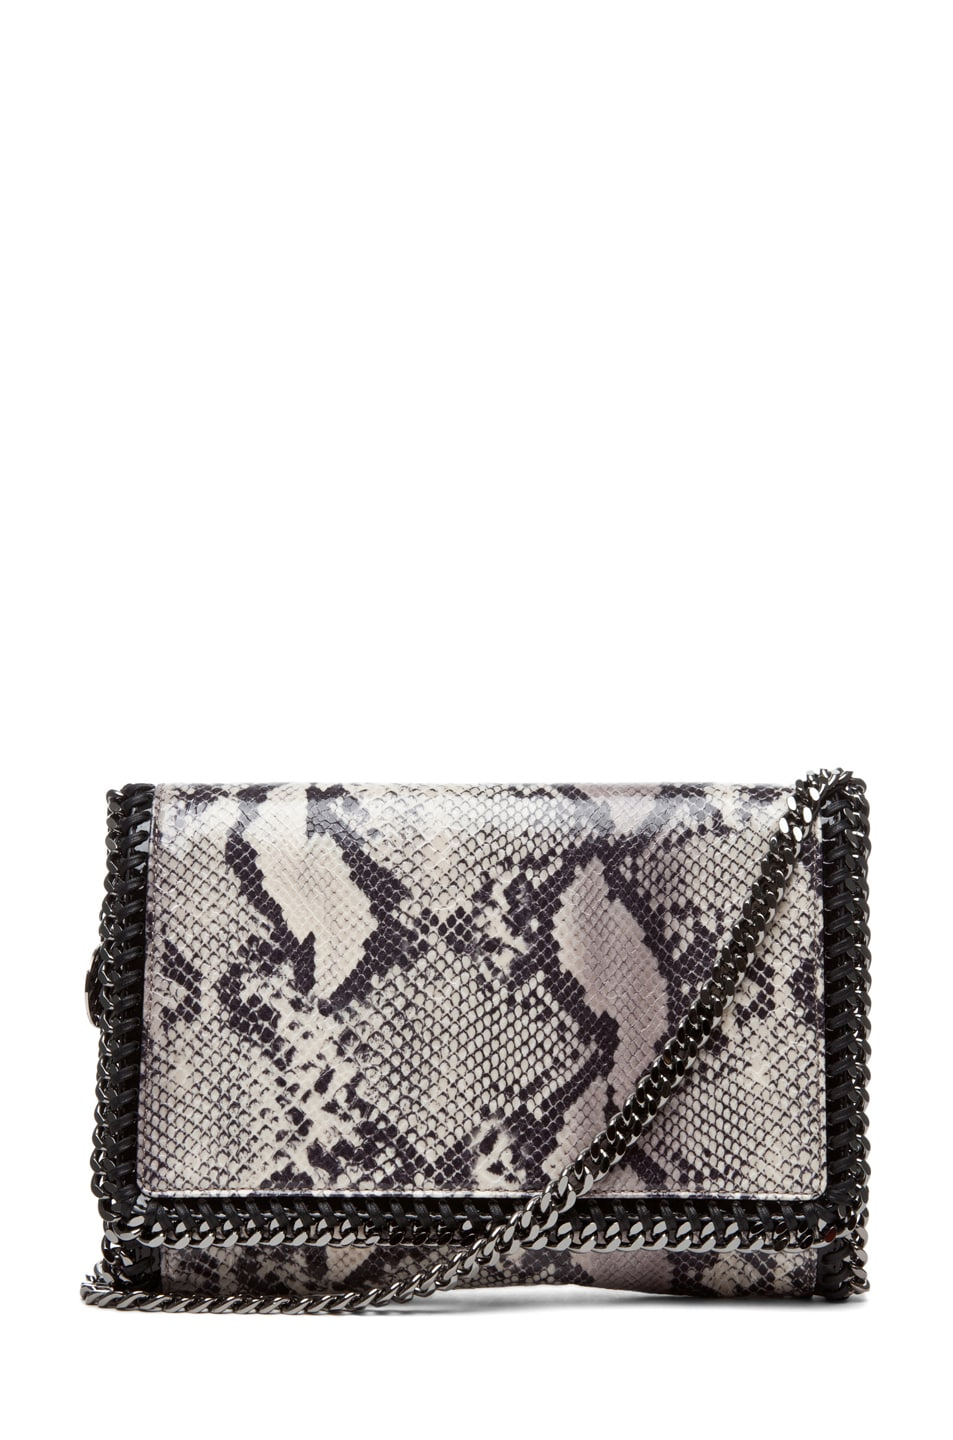 Image 1 of Stella McCartney Python VIP Shoulder Bag in Ivory